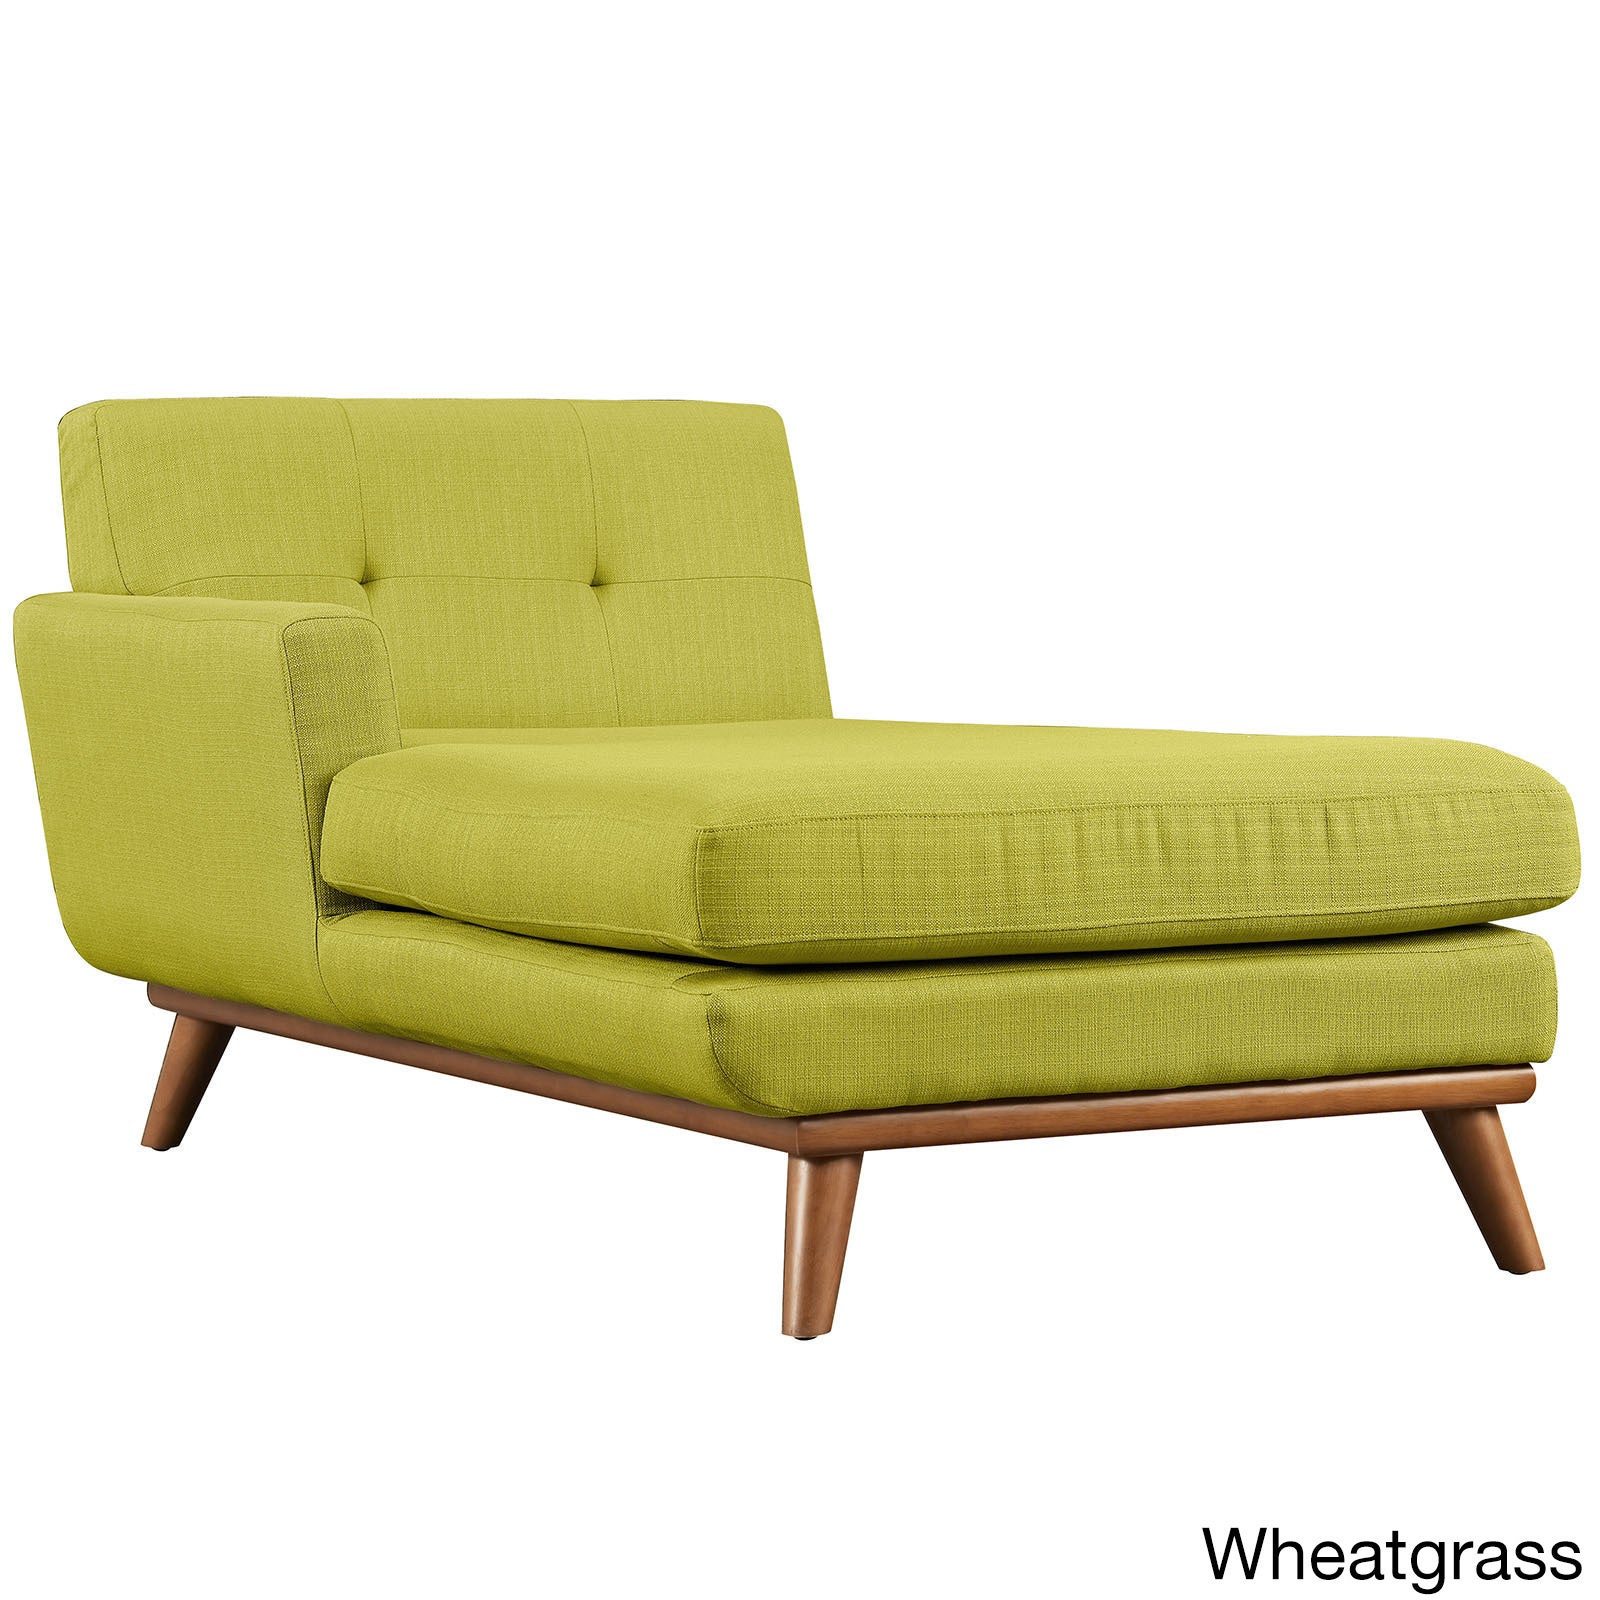 regard ideas cilantro chairs well luxury chaise strathmere of liked with longue in strathchs green accent best lounge to furniture